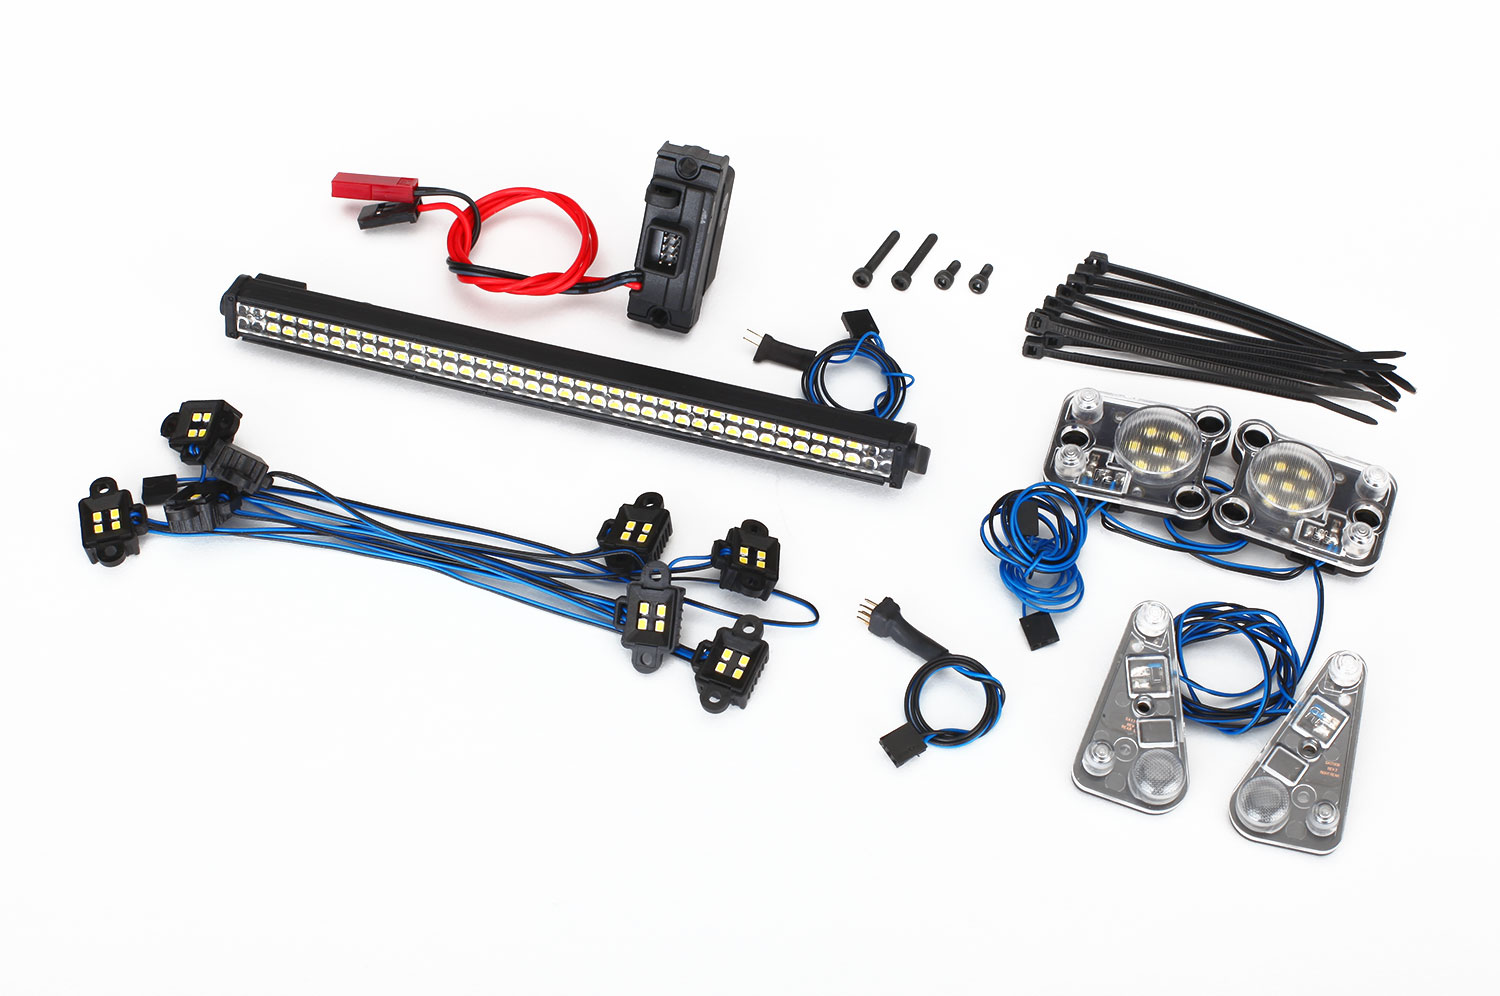 hight resolution of trx 4 led lights are available as a complete kit or as individual components allowing trx 4 owners to select the exact setup that meets their needs